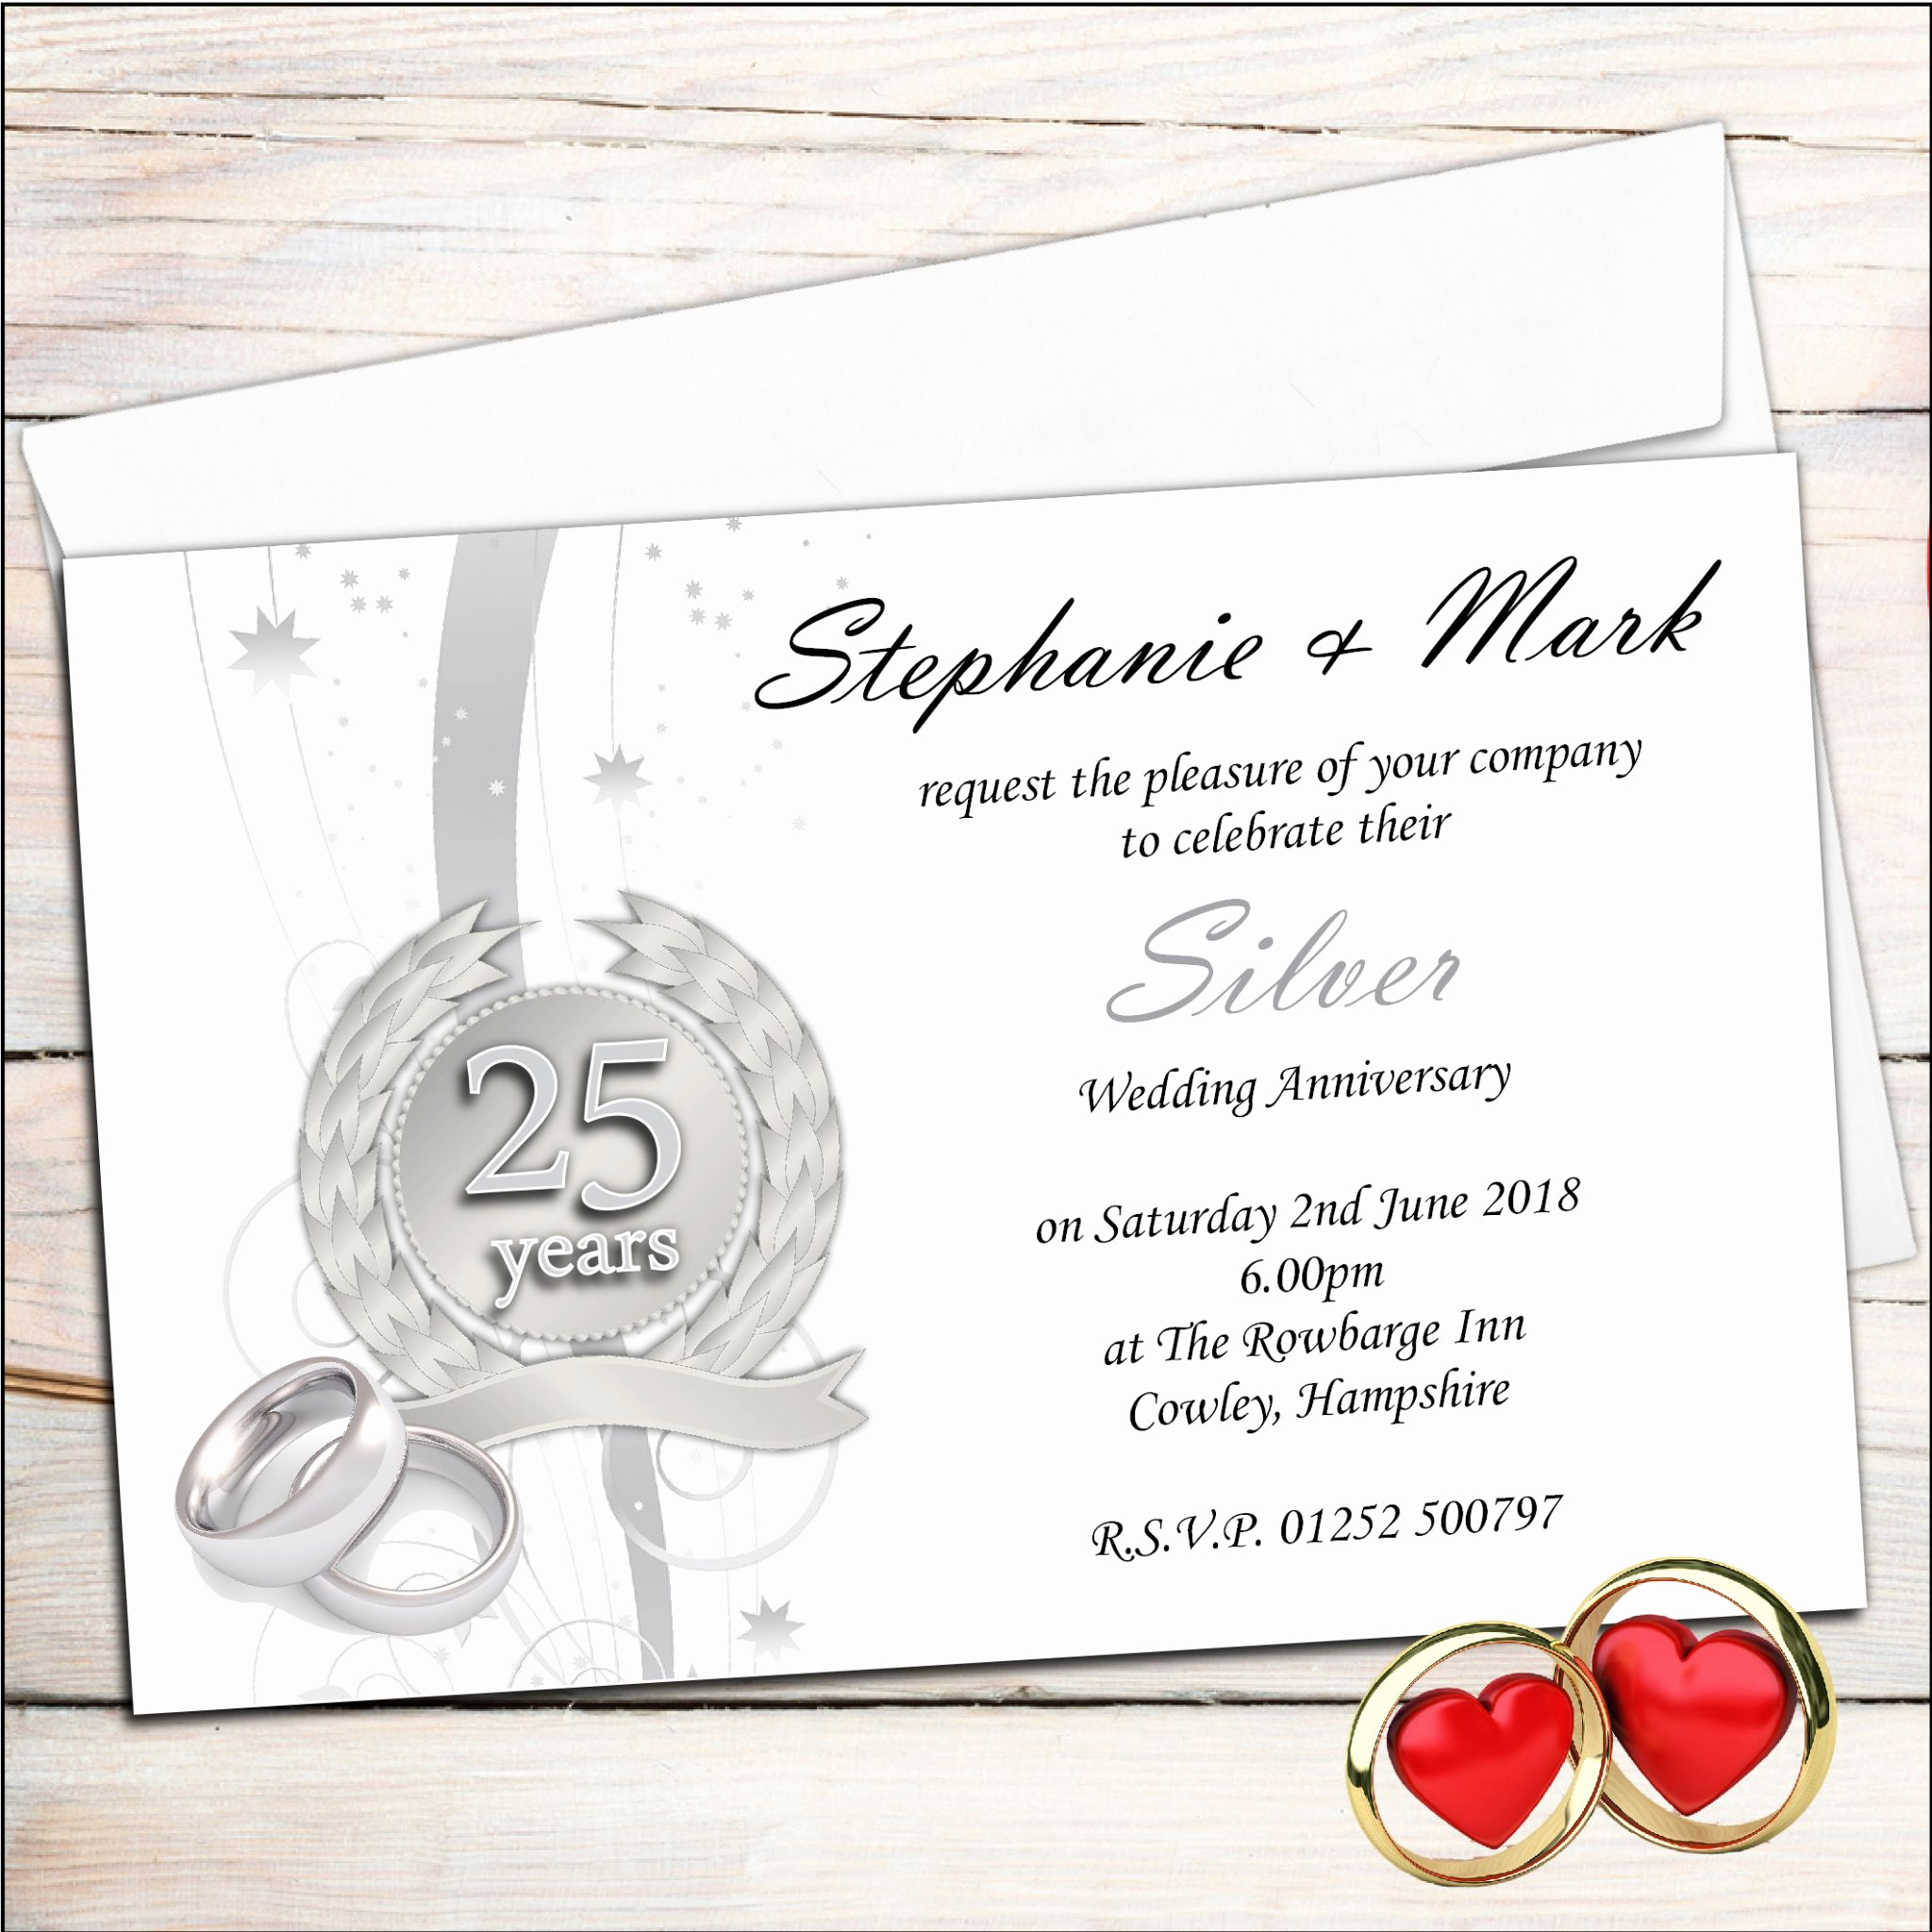 25th Anniversary Invitation Cards Best Of Free 25th Wedding Anniversary Invitations Free Templates